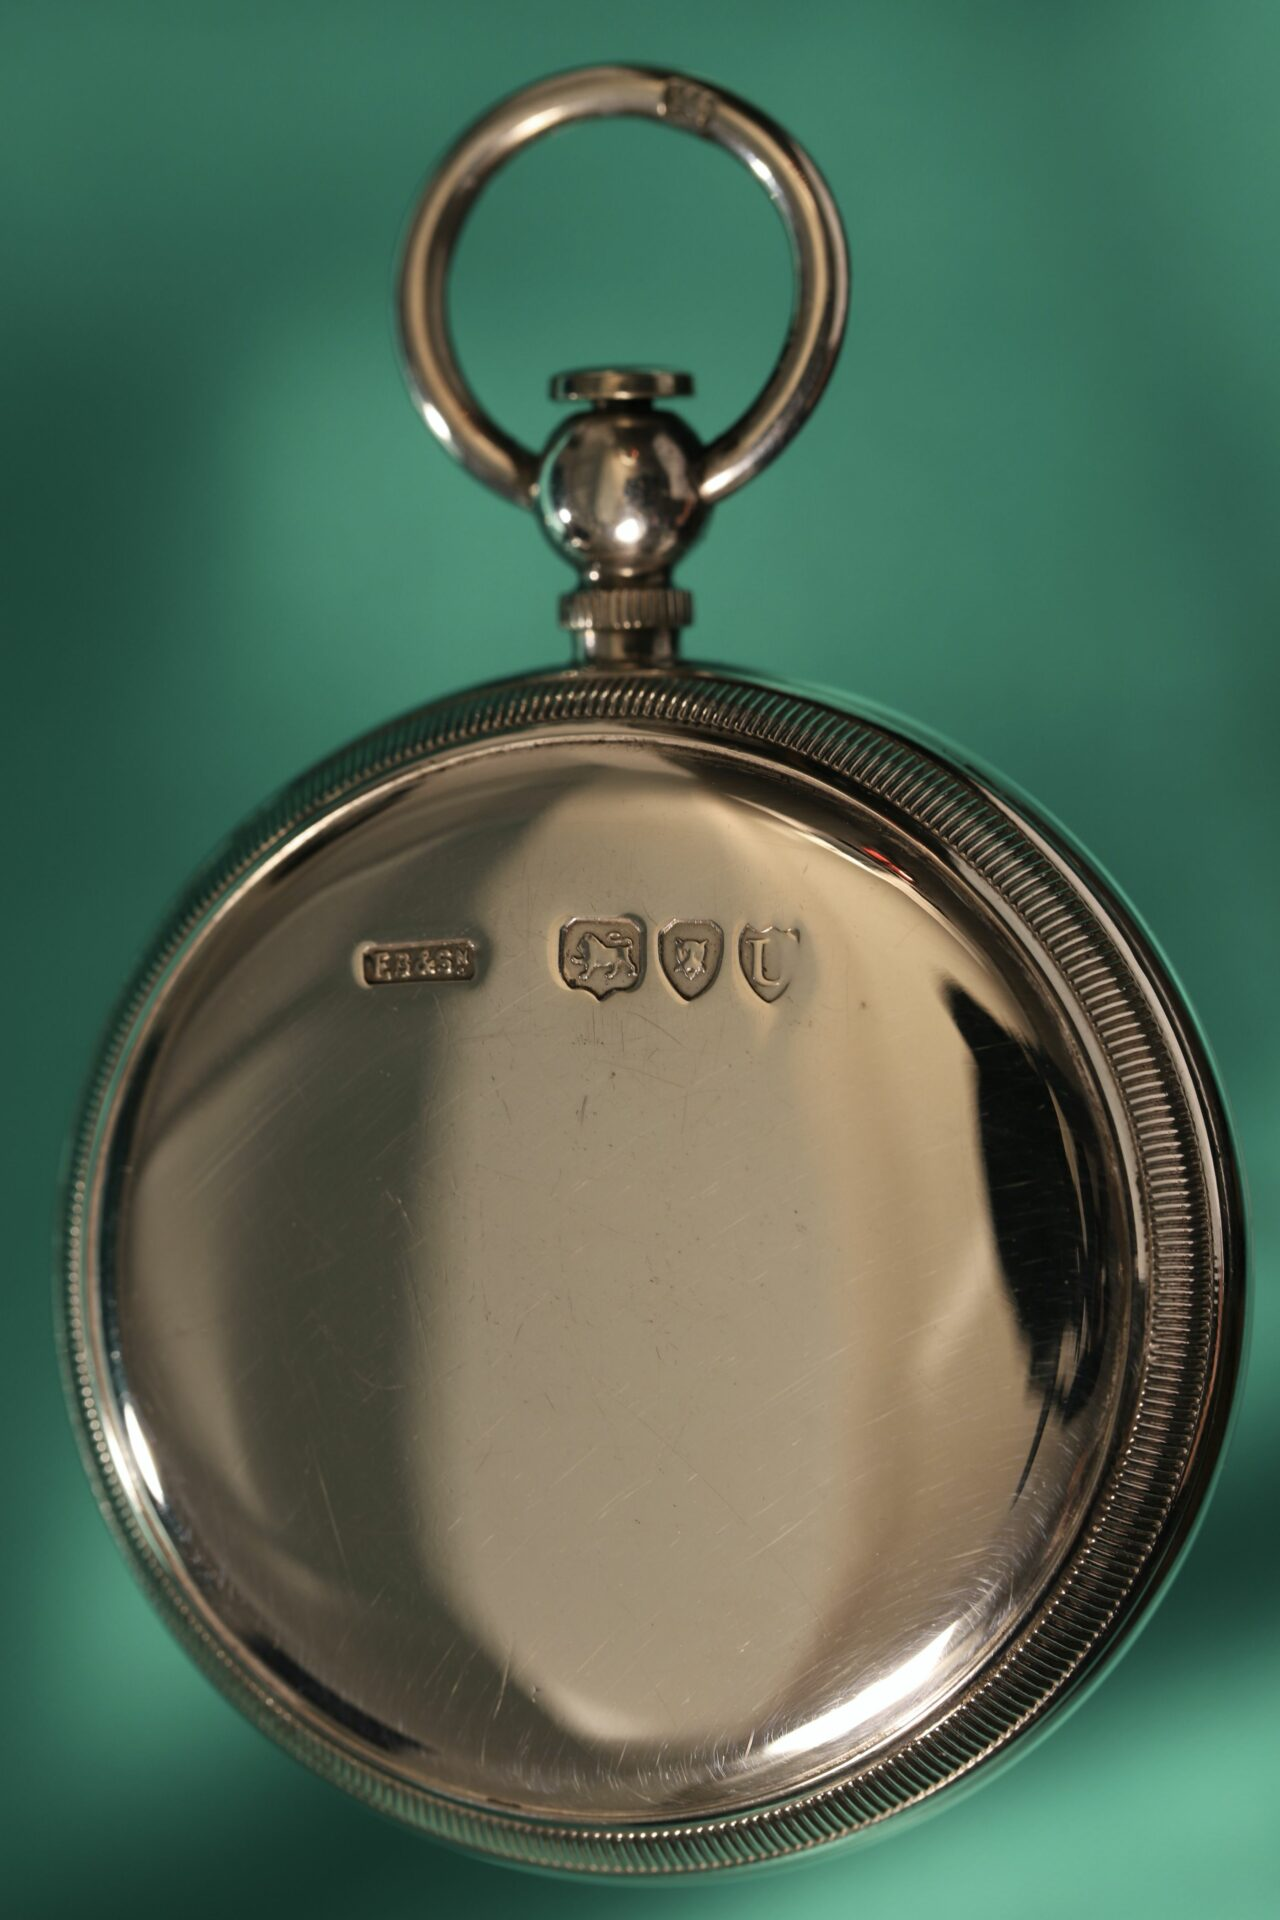 Image of back of compass from Houghton & Gunn Silver Travel Compendium c1895 showing hallmarks